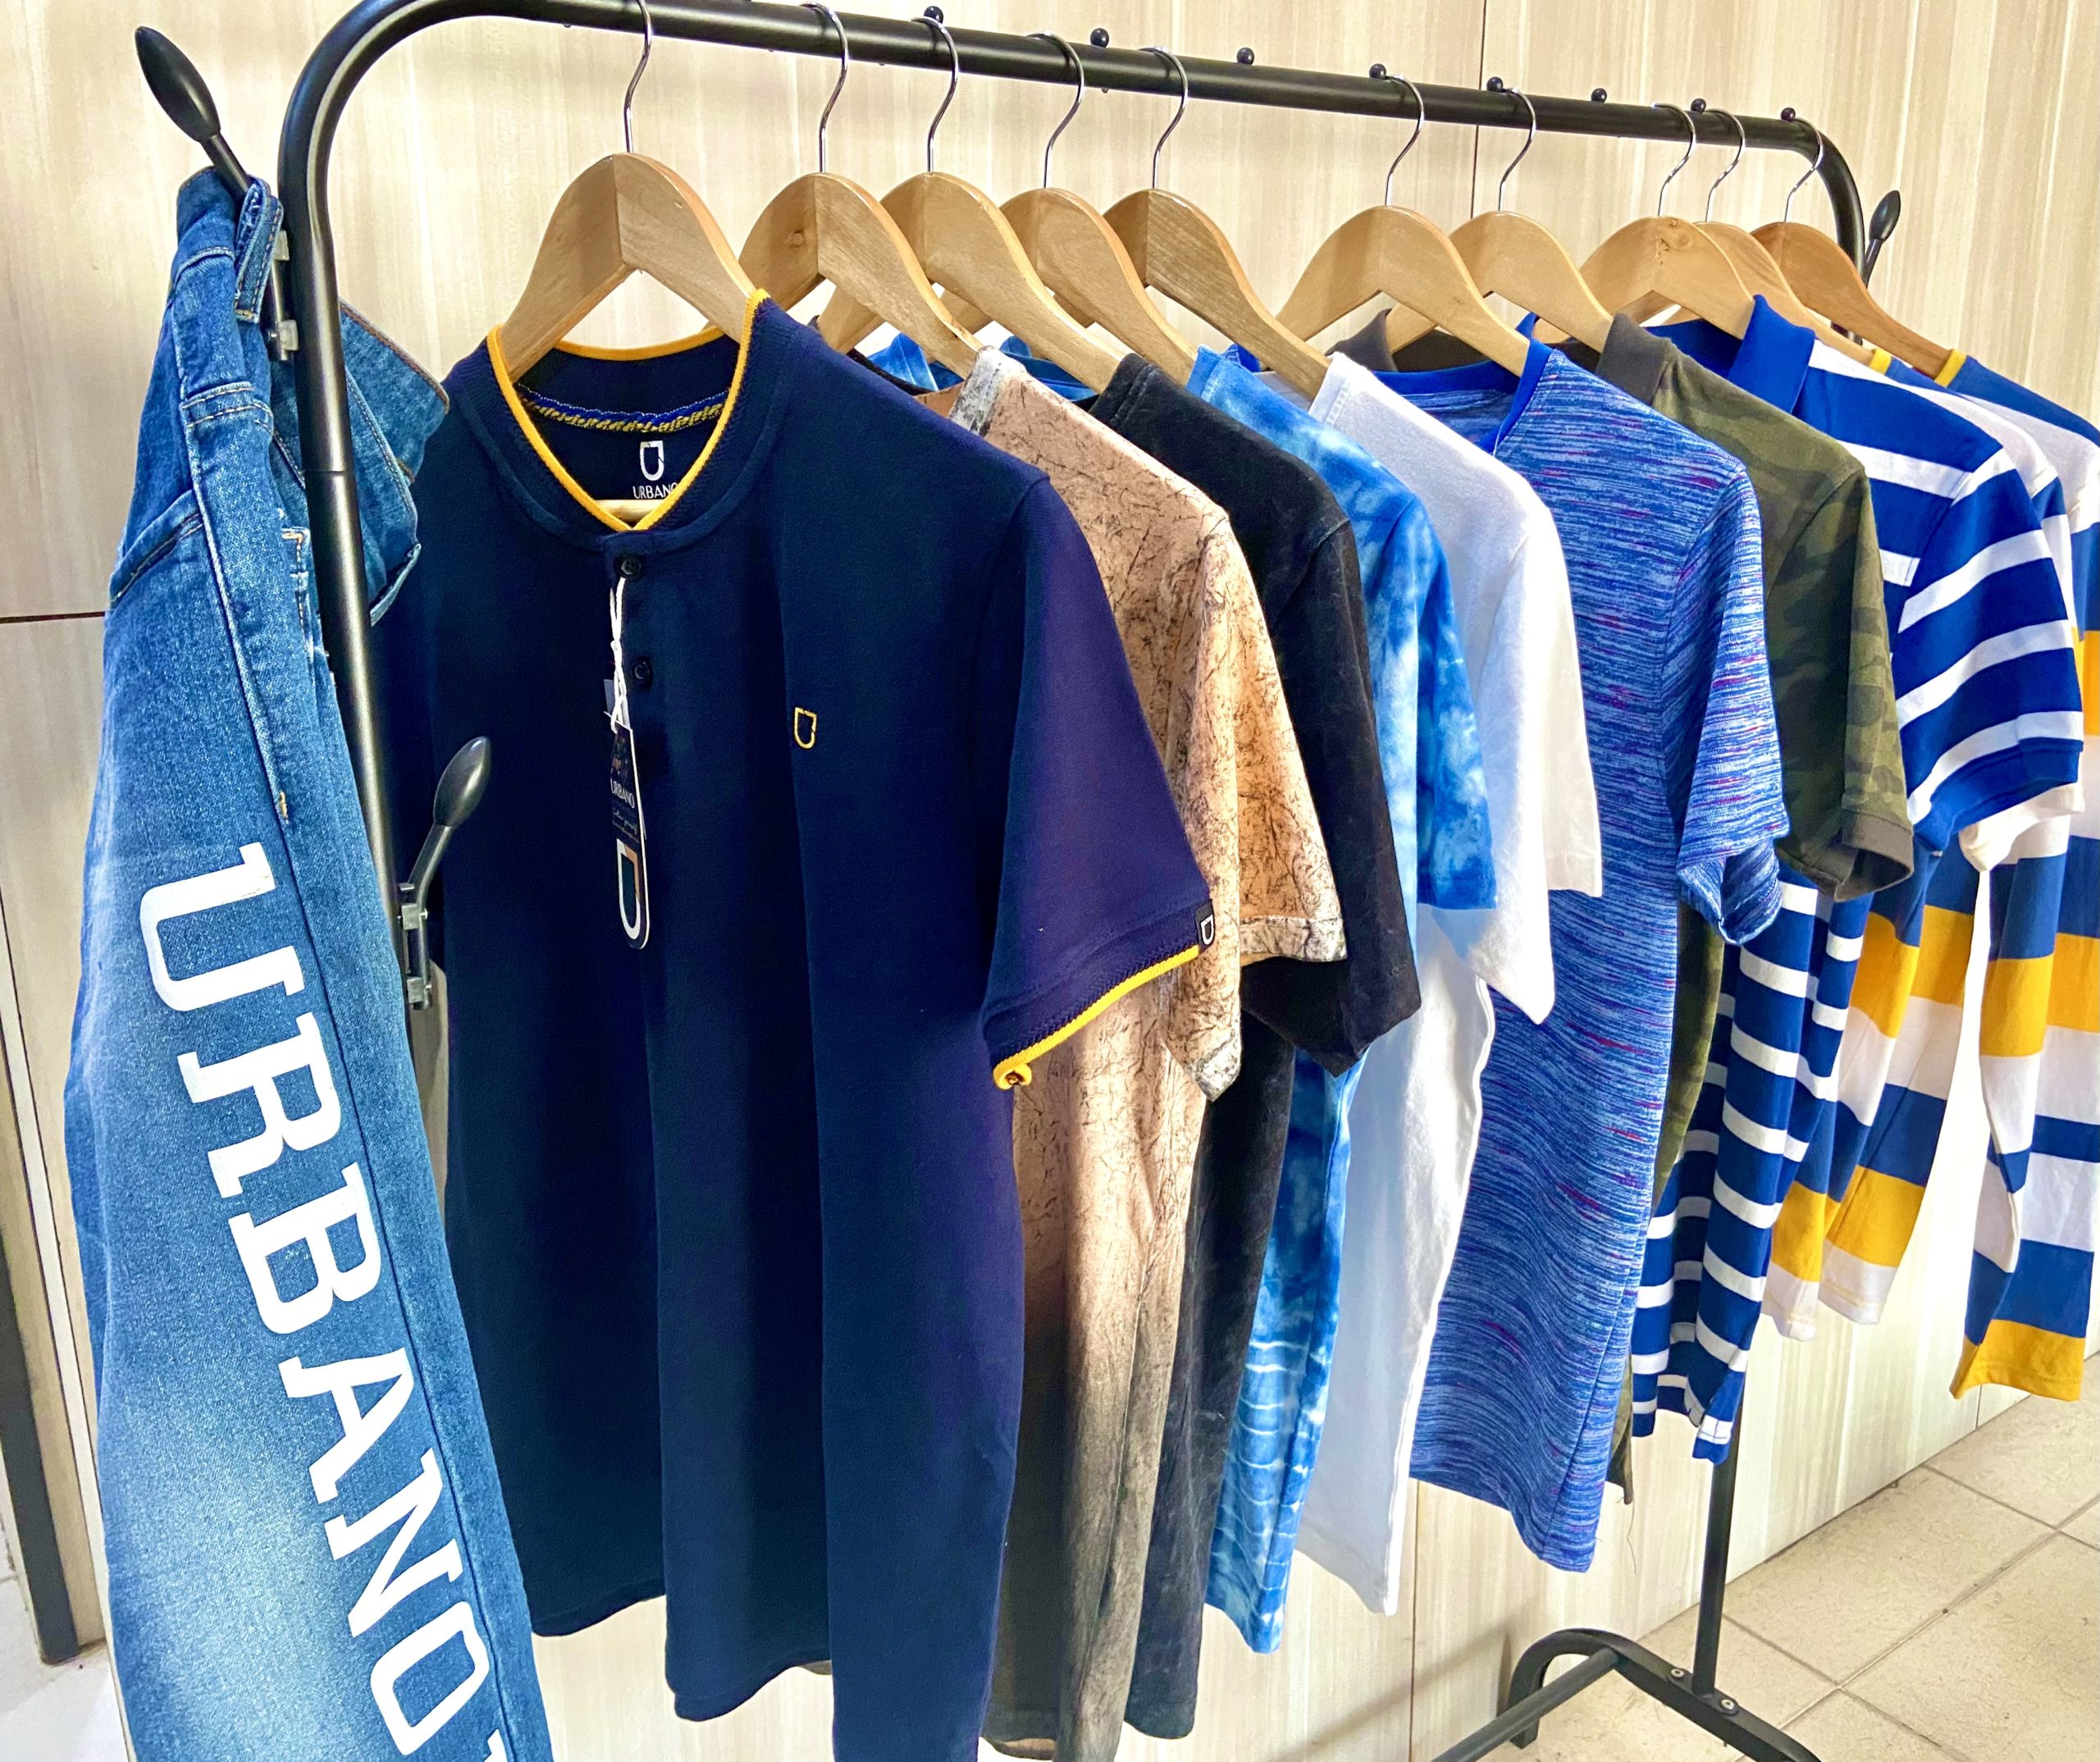 How Urbano Fashion Became One of India's Fastest Growing Online Brands